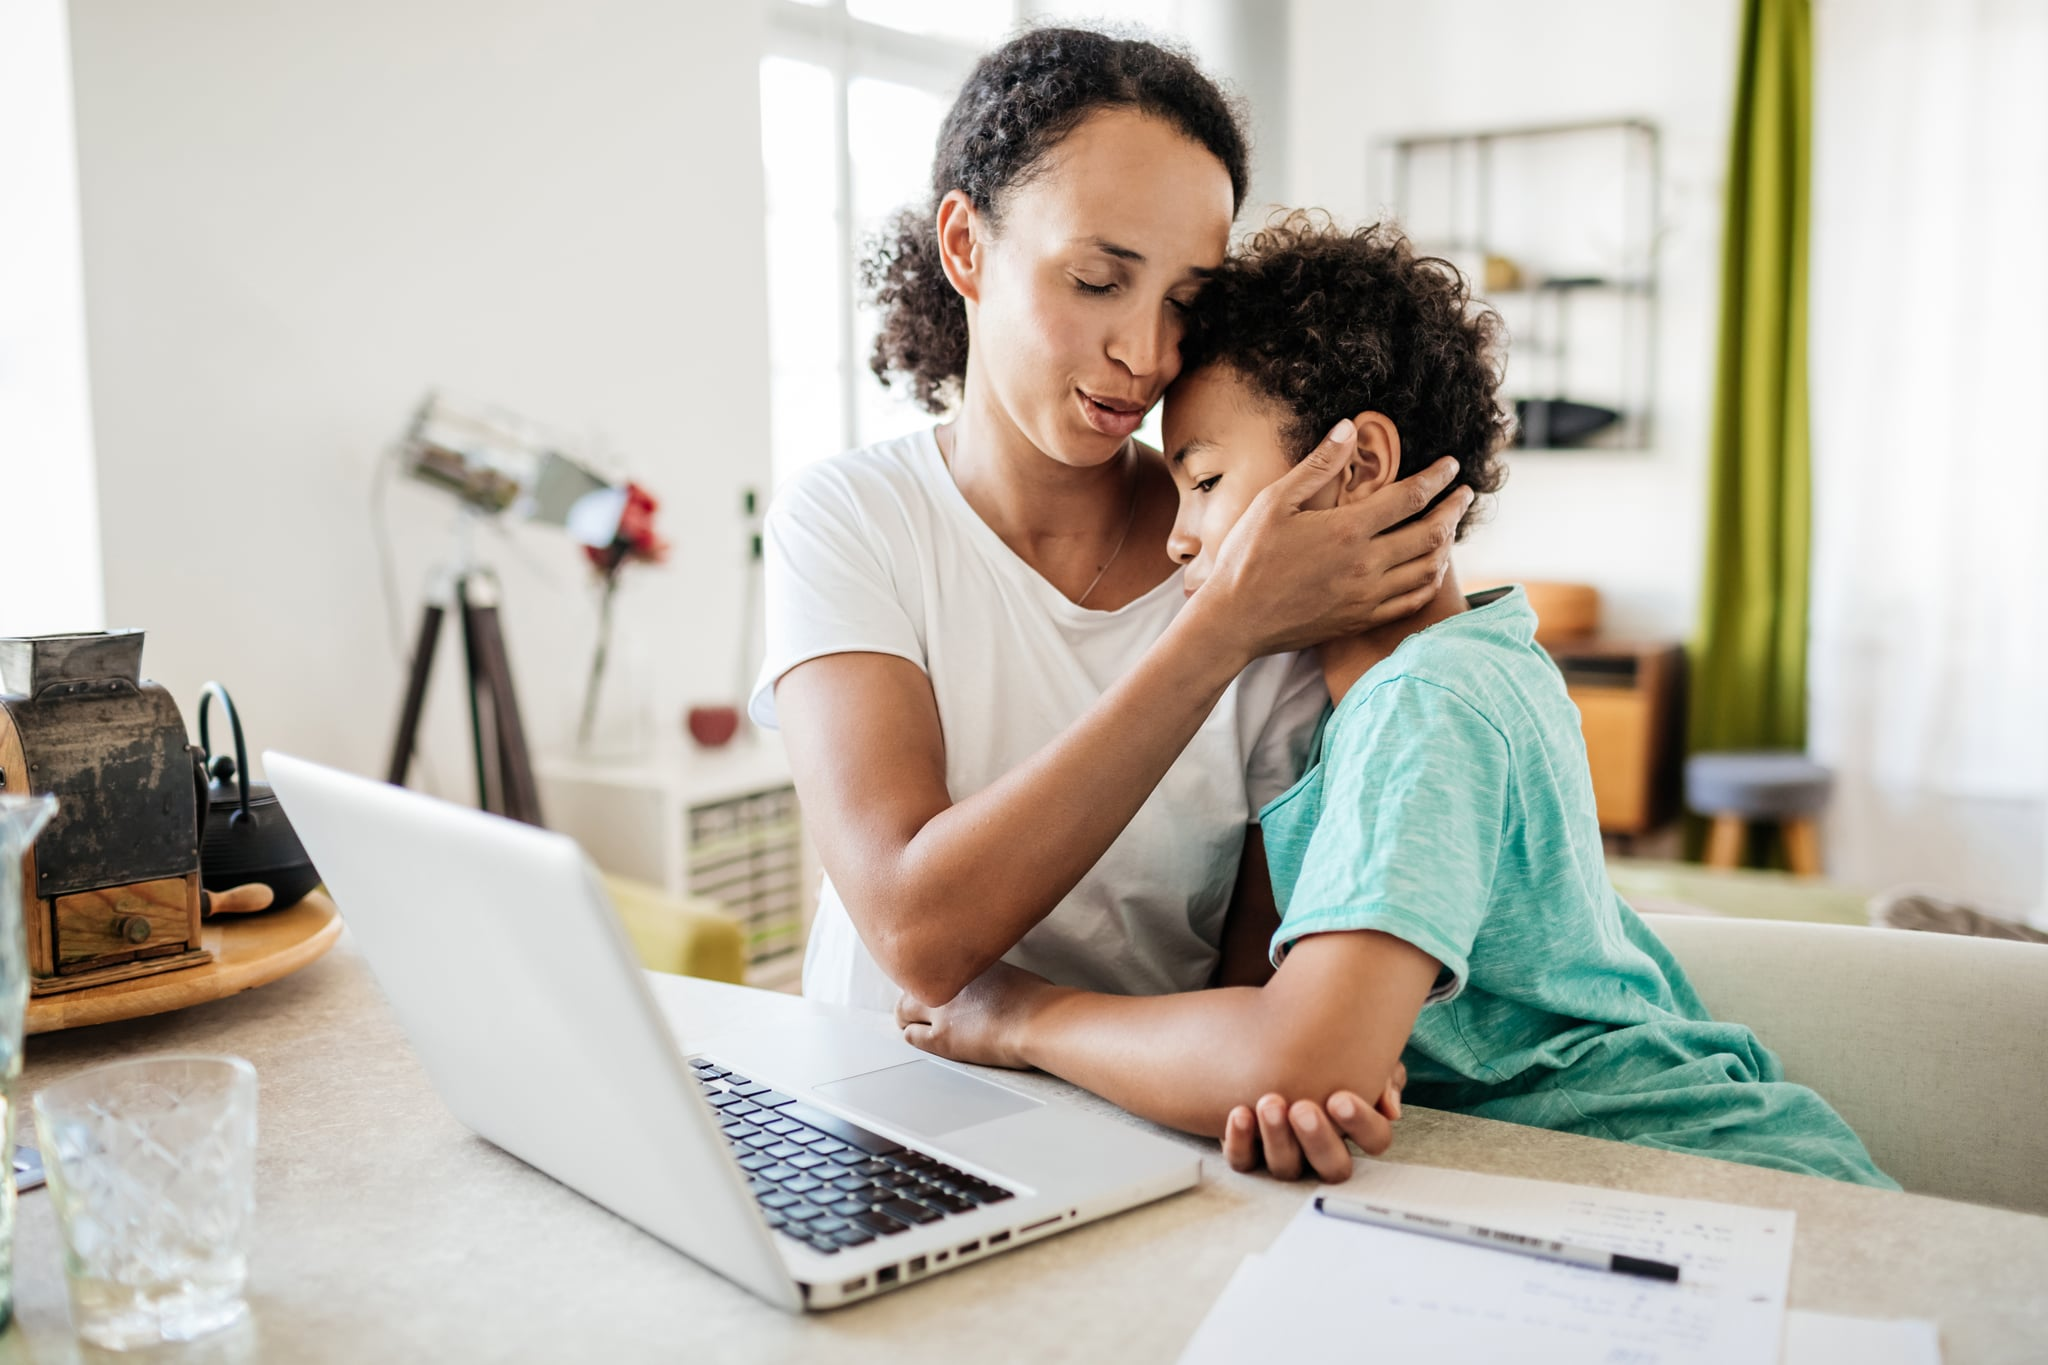 A single mom affectionately holding her young son  while she works from home in her kitchen using a laptop.